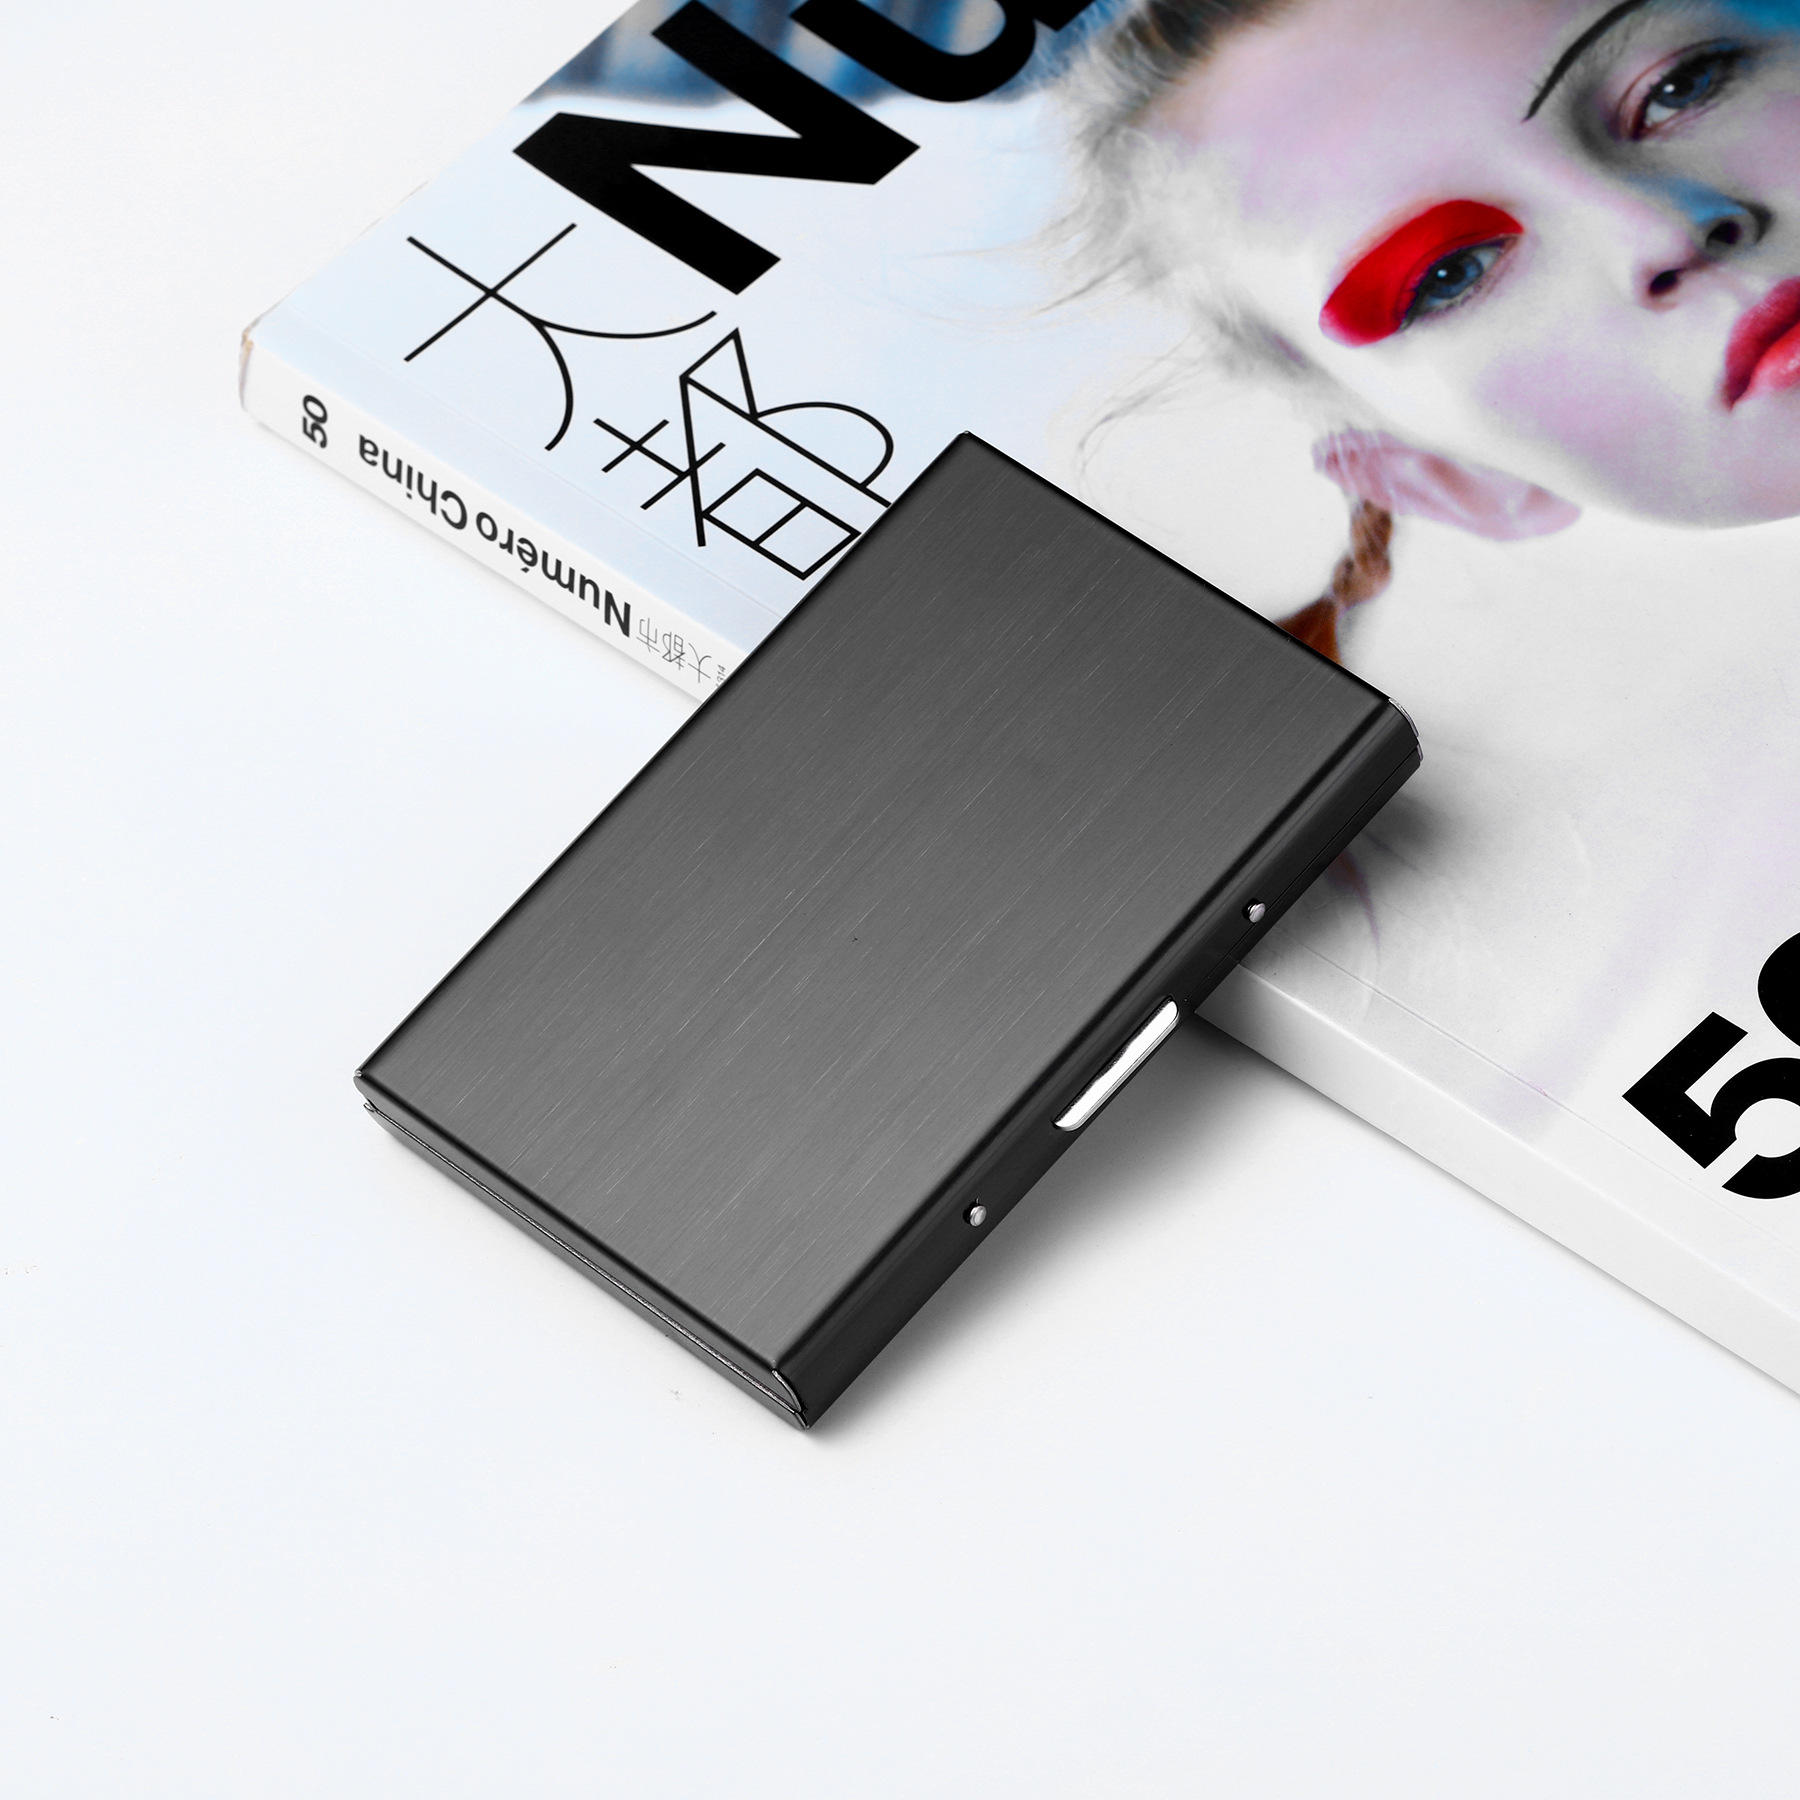 Metal Stainless Steel Black Titanium Business Card Holder Credit Card Cover ID Name Card Holder Case Storage Box - 5